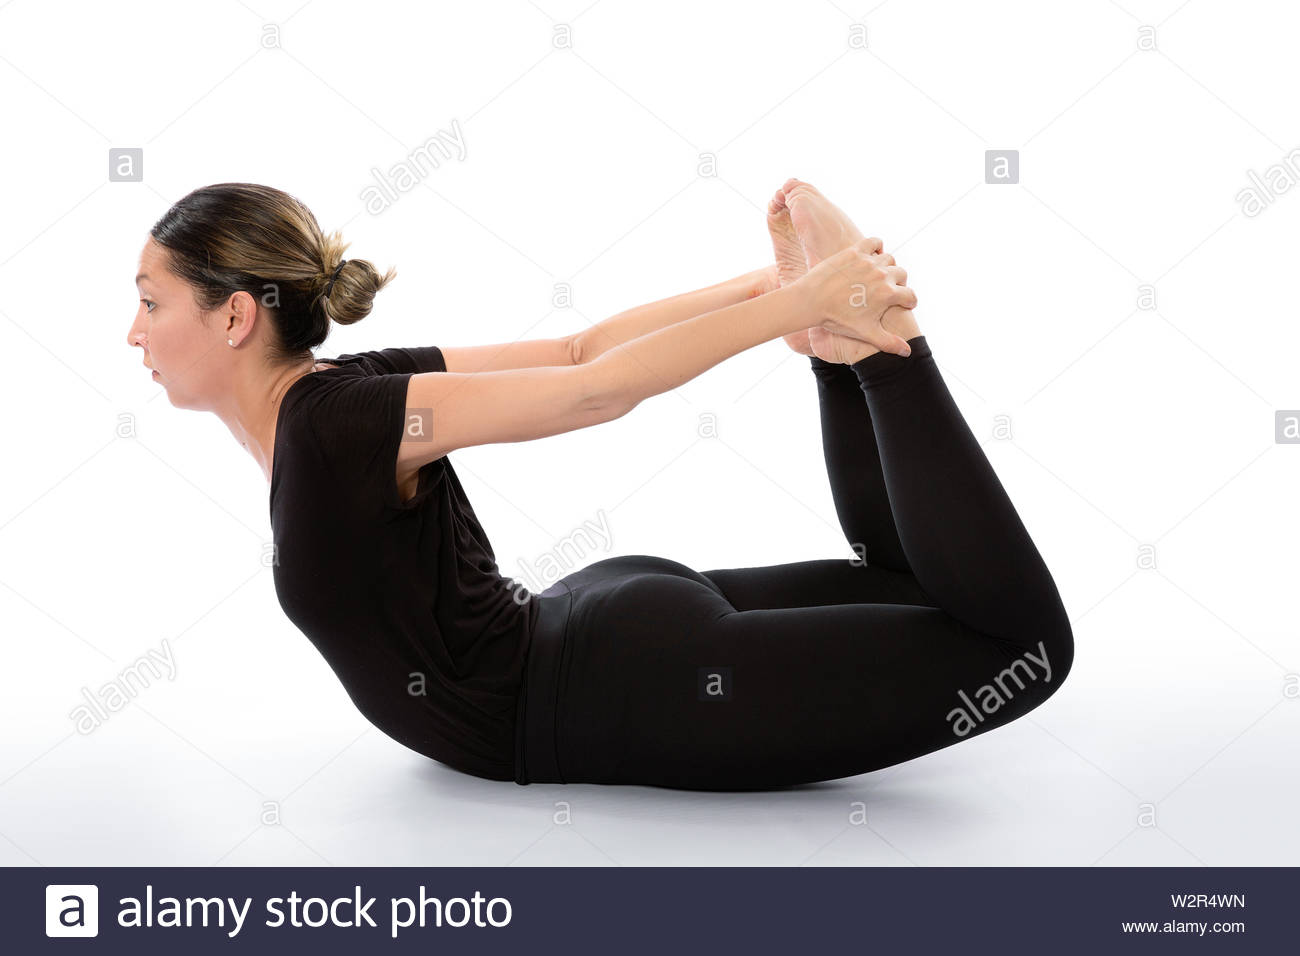 Dhanurasana yoga pose (Bow pose). Yoga poses woman isolated with white background. Yoga pose set. Mindfulness and Spiritually concept. Girl practicing Stock Photo